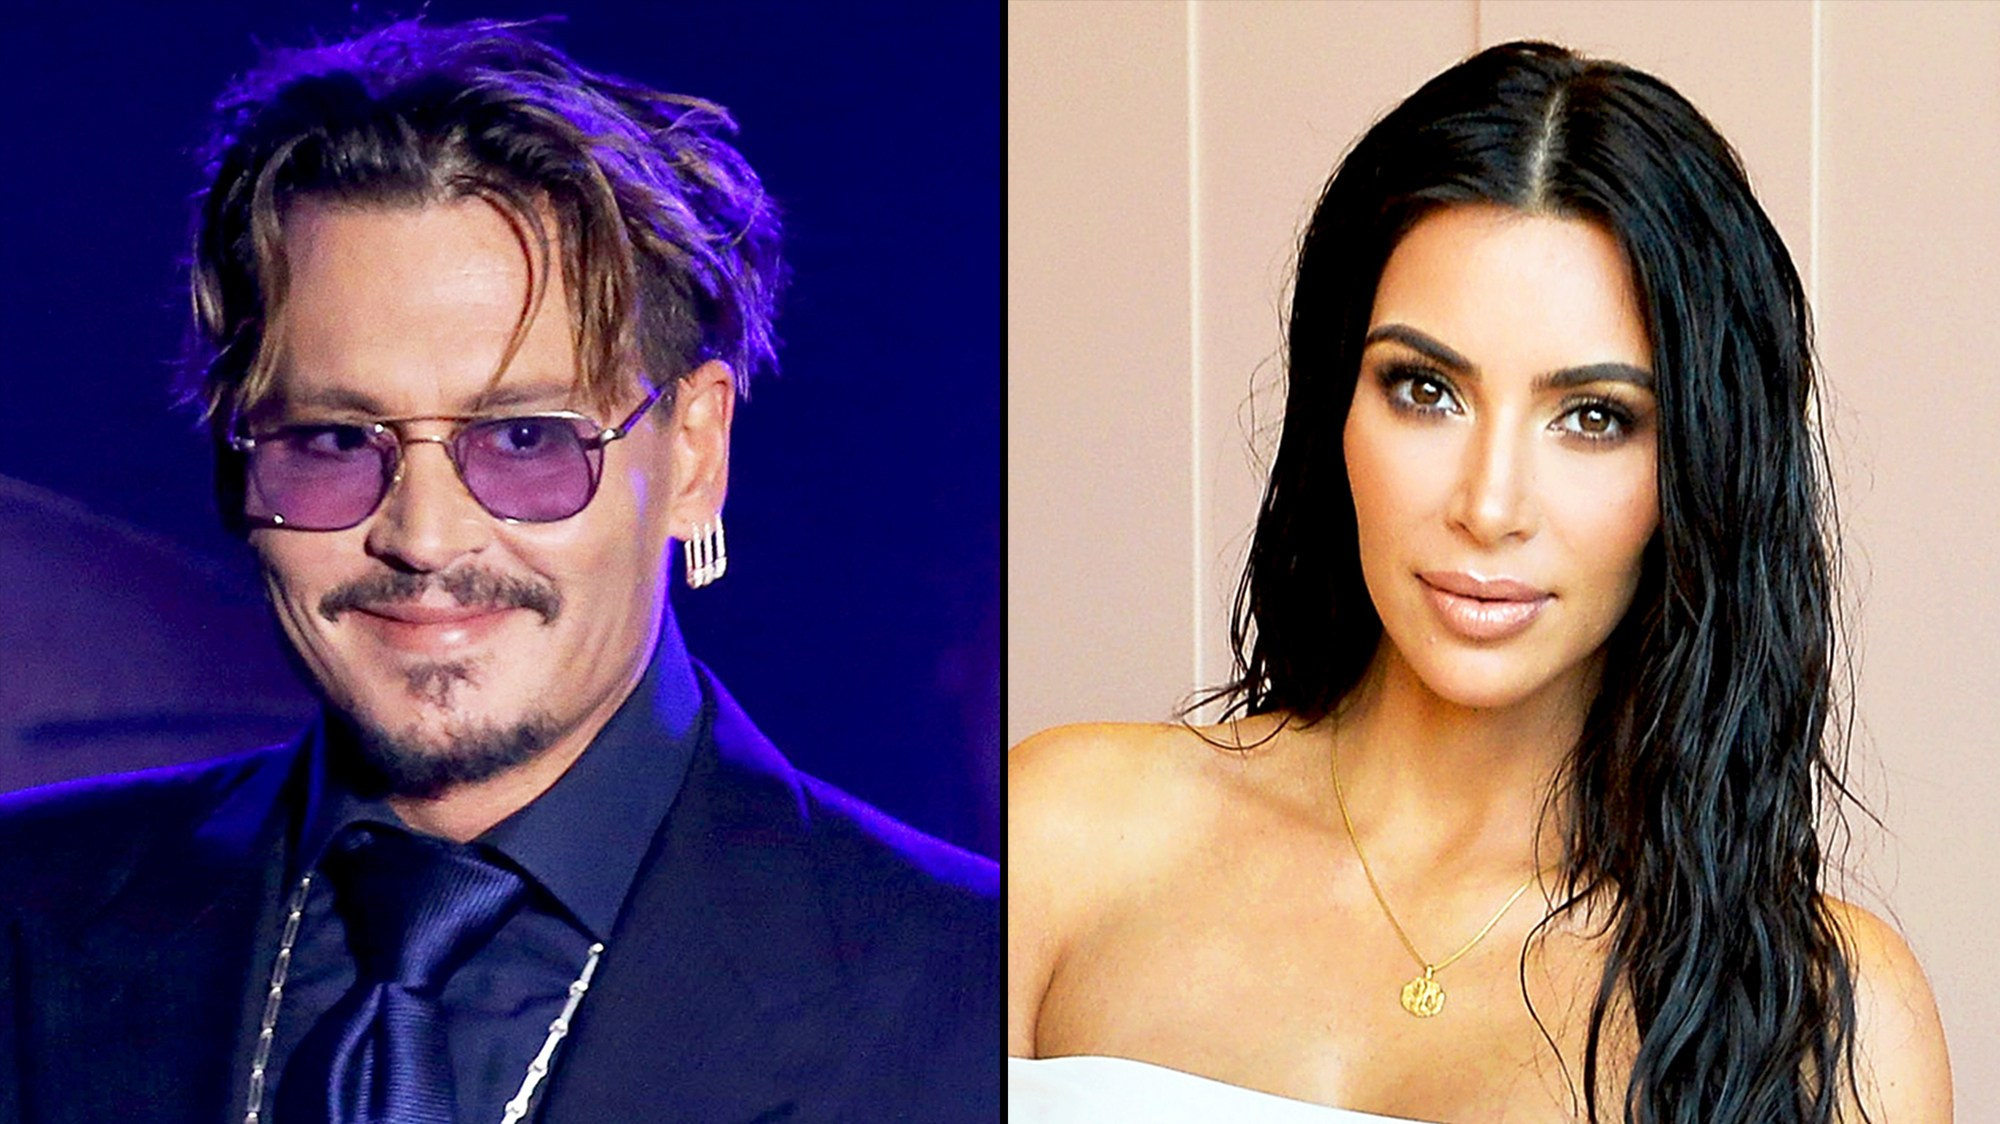 Johnny Depp and Kim Kardashian